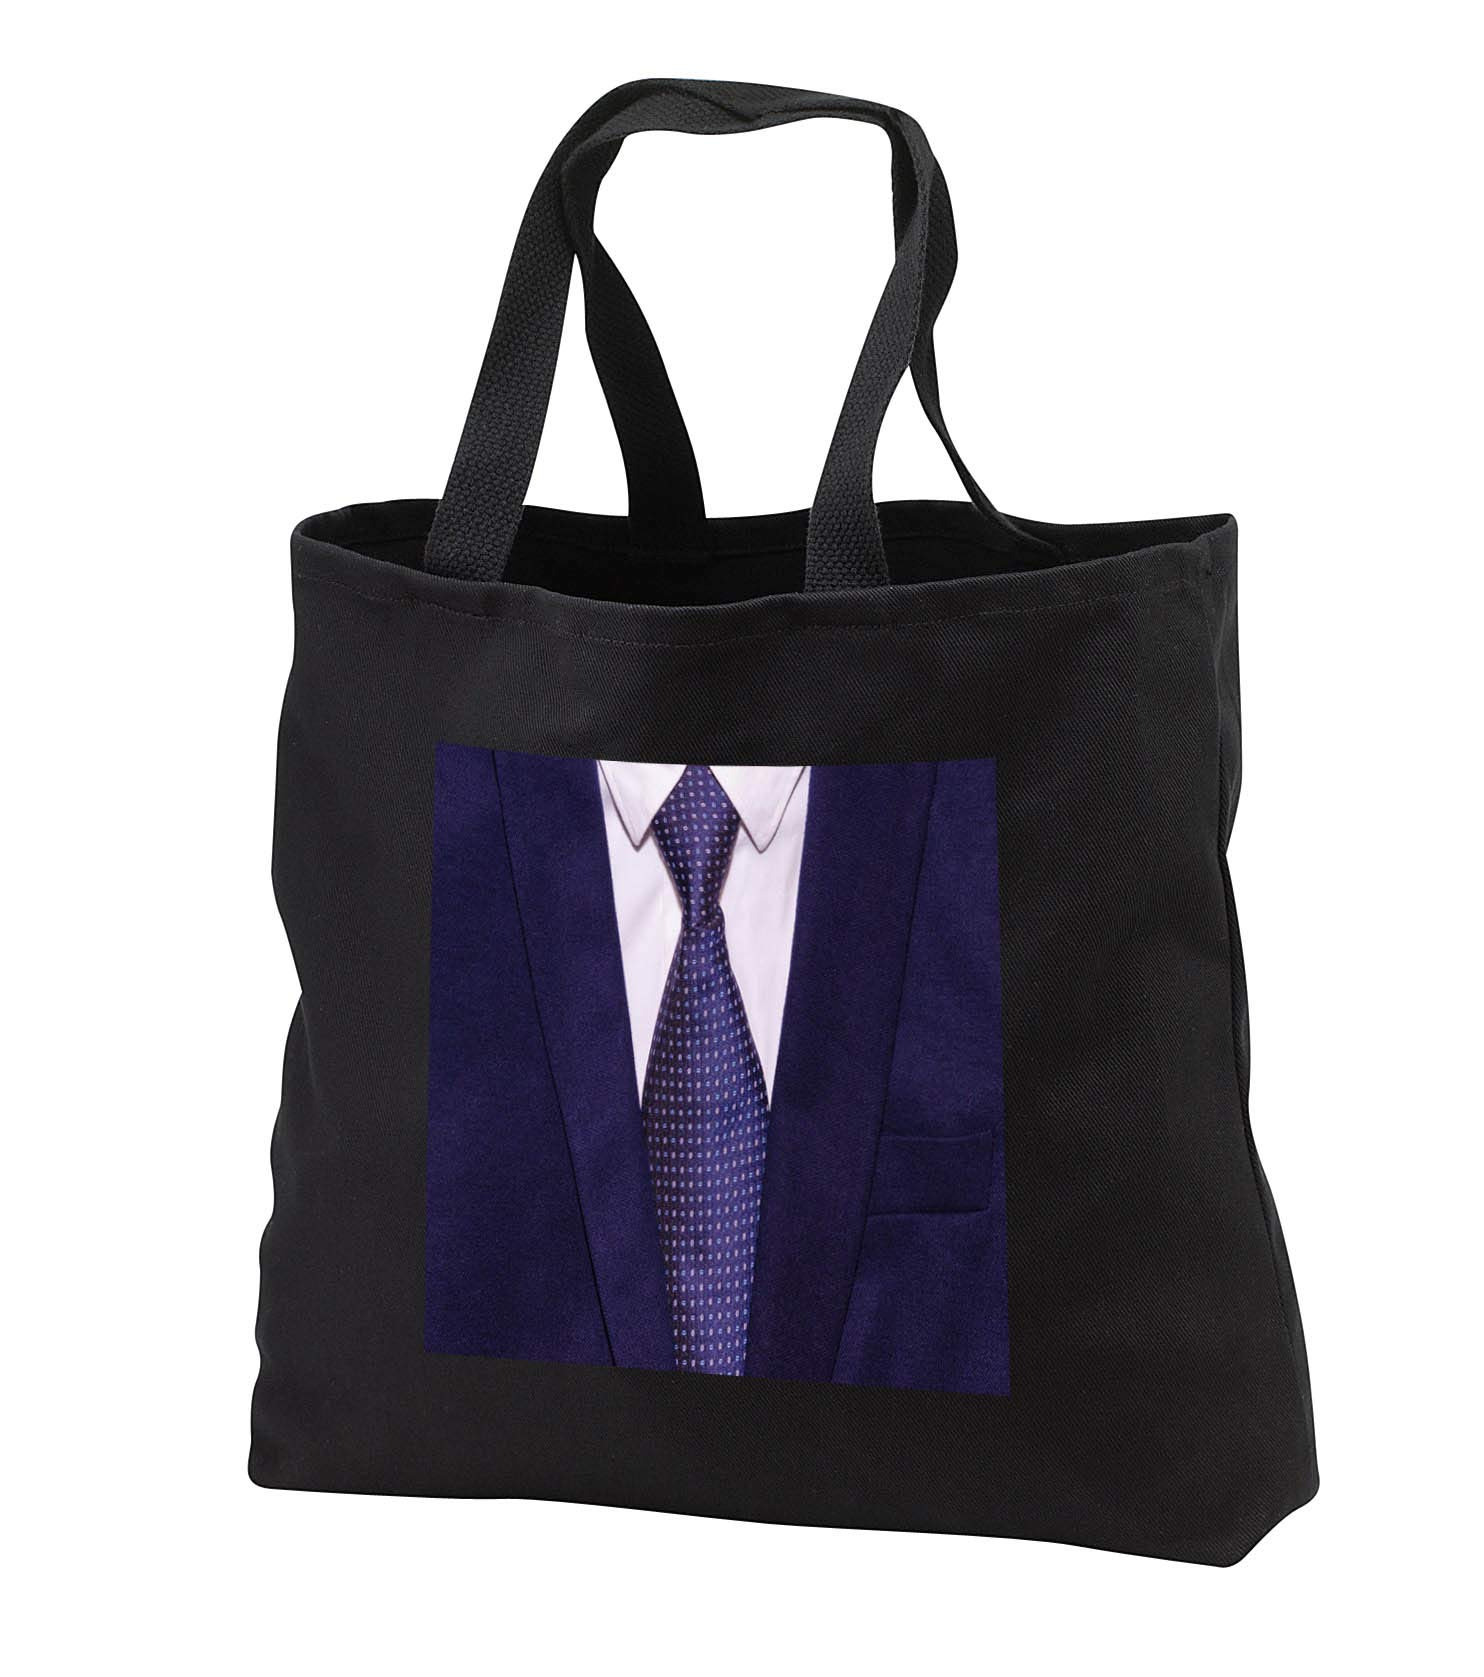 Lens Art by Florene - Décor Three - Image of A Mans Jacket Tie And Dress Shirt - Tote Bags - Black Tote Bag 14w x 14h x 3d (tb_291479_1) by 3dRose